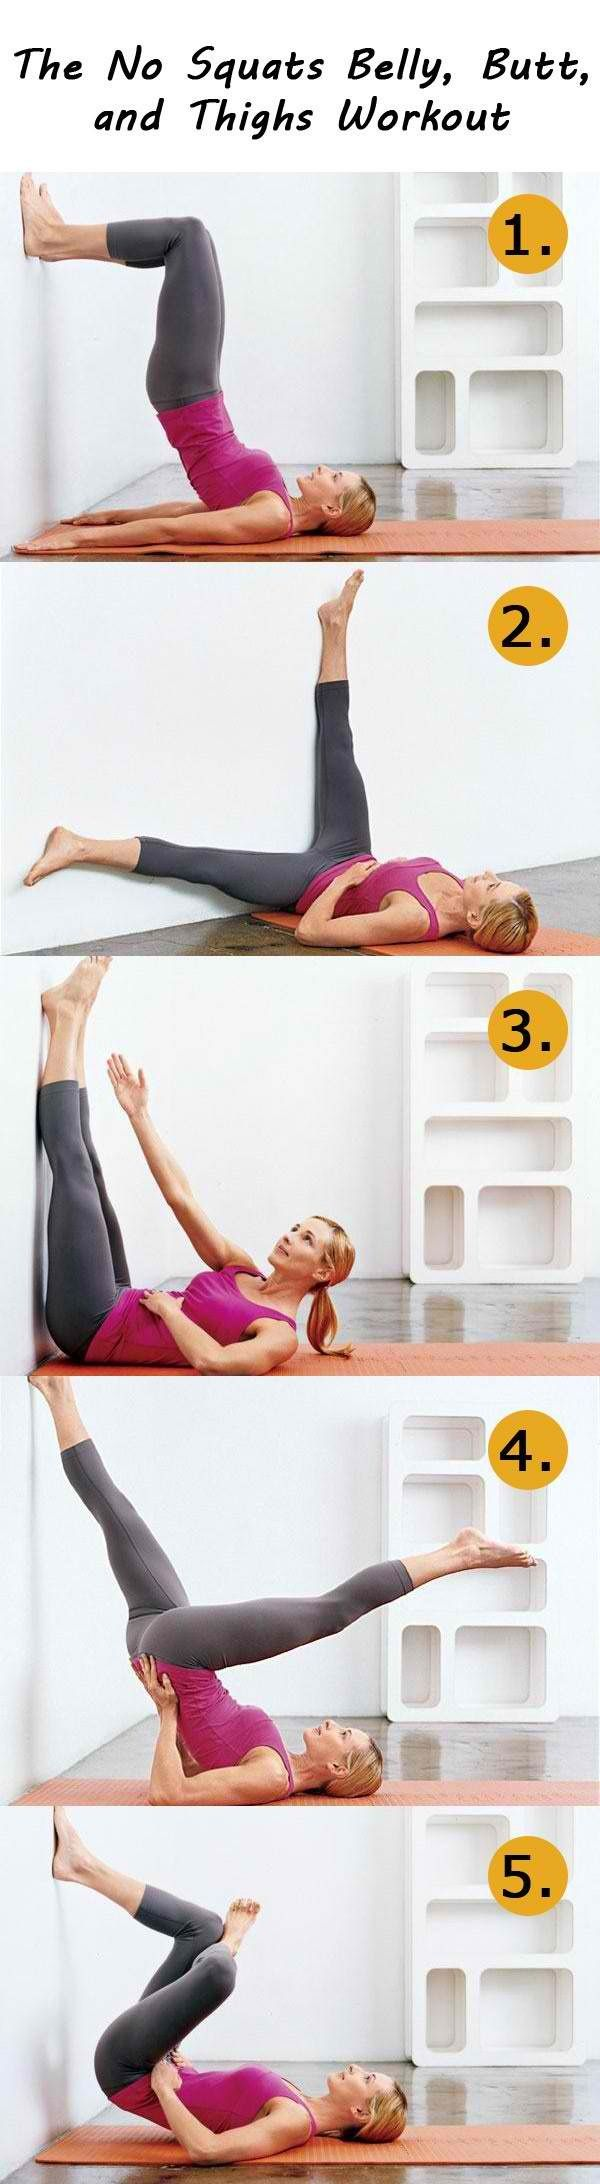 Wall Excersises; gonna have to try this!                                                                                                                                                                                 More